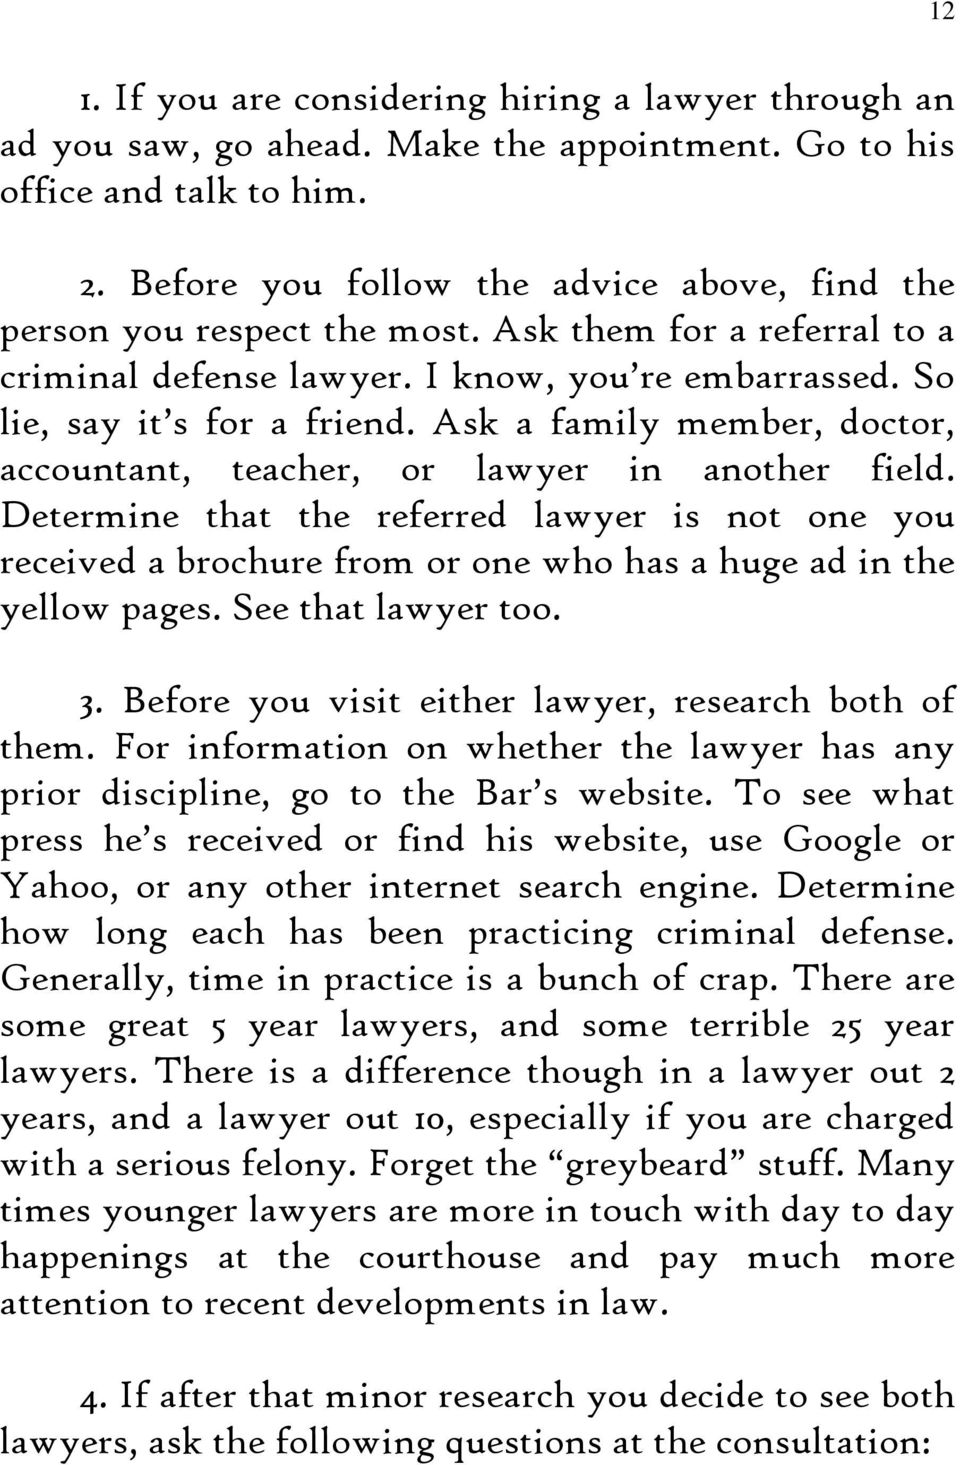 Ask a family member, doctor, accountant, teacher, or lawyer in another field. Determine that the referred lawyer is not one you received a brochure from or one who has a huge ad in the yellow pages.